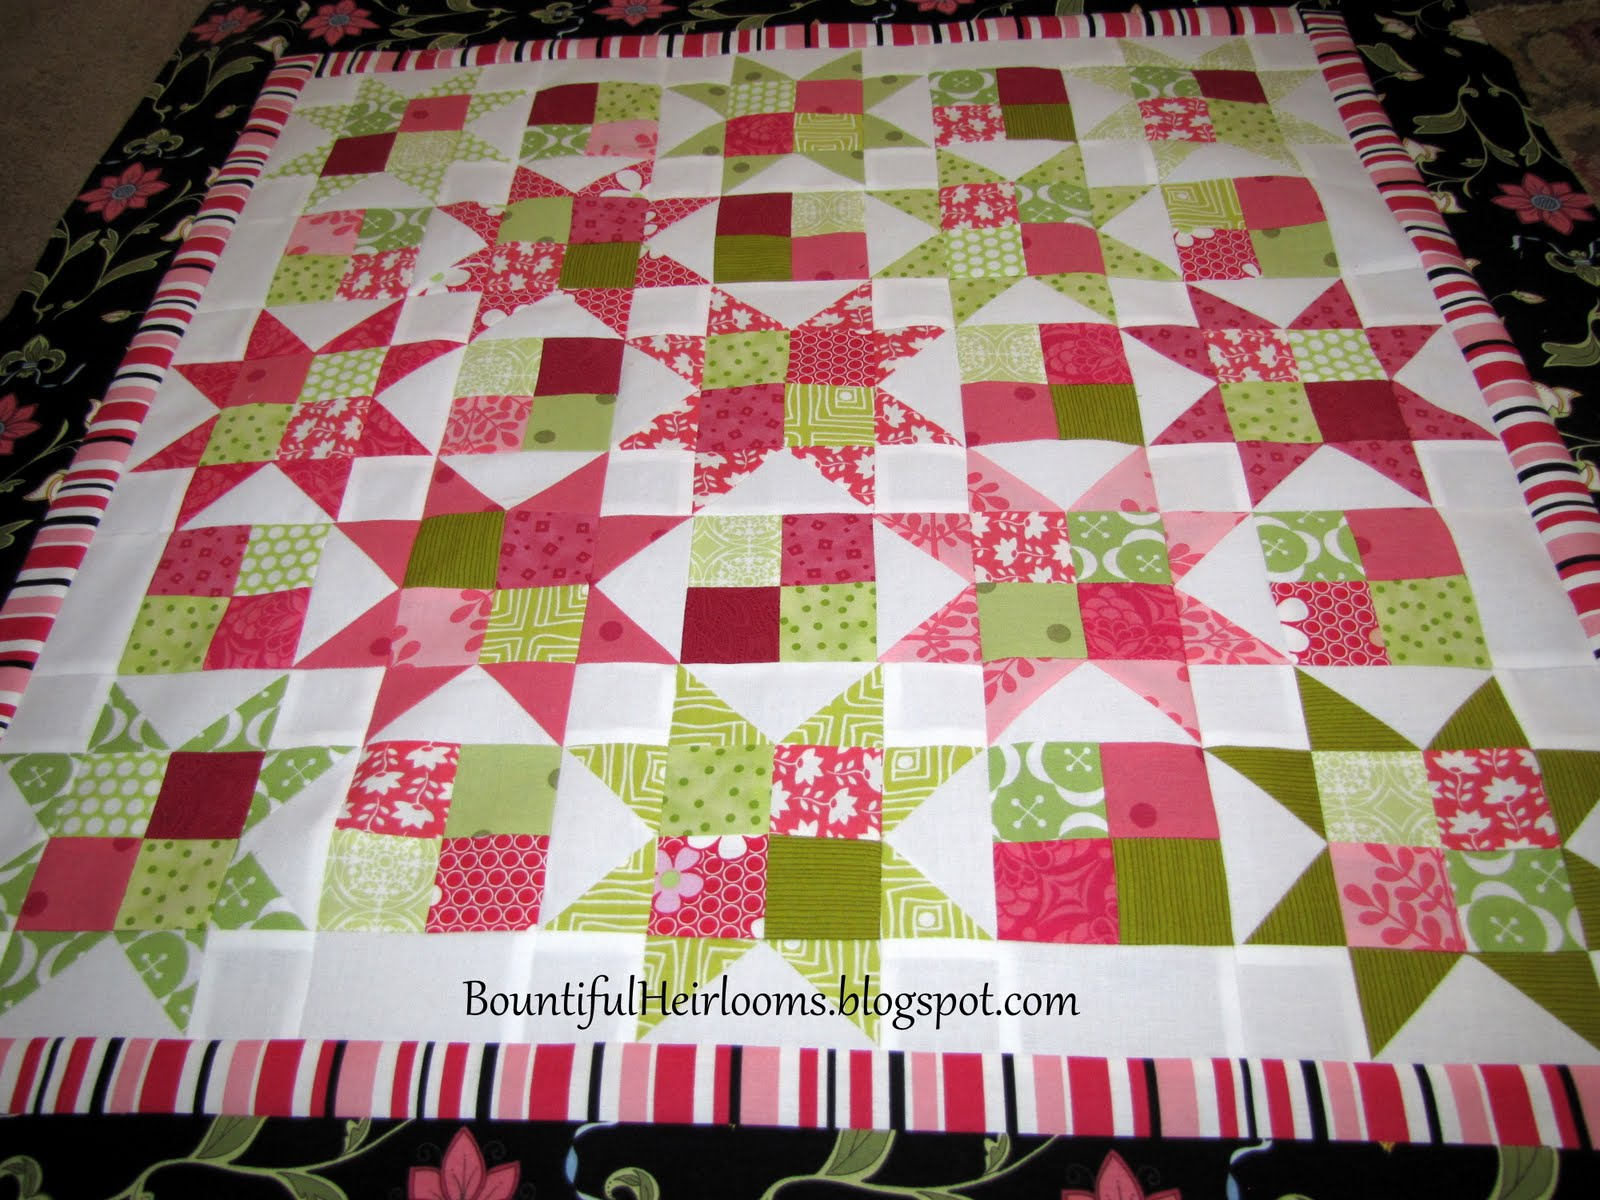 Bountiful Heirlooms So How Long Did That Quilt Take To Make